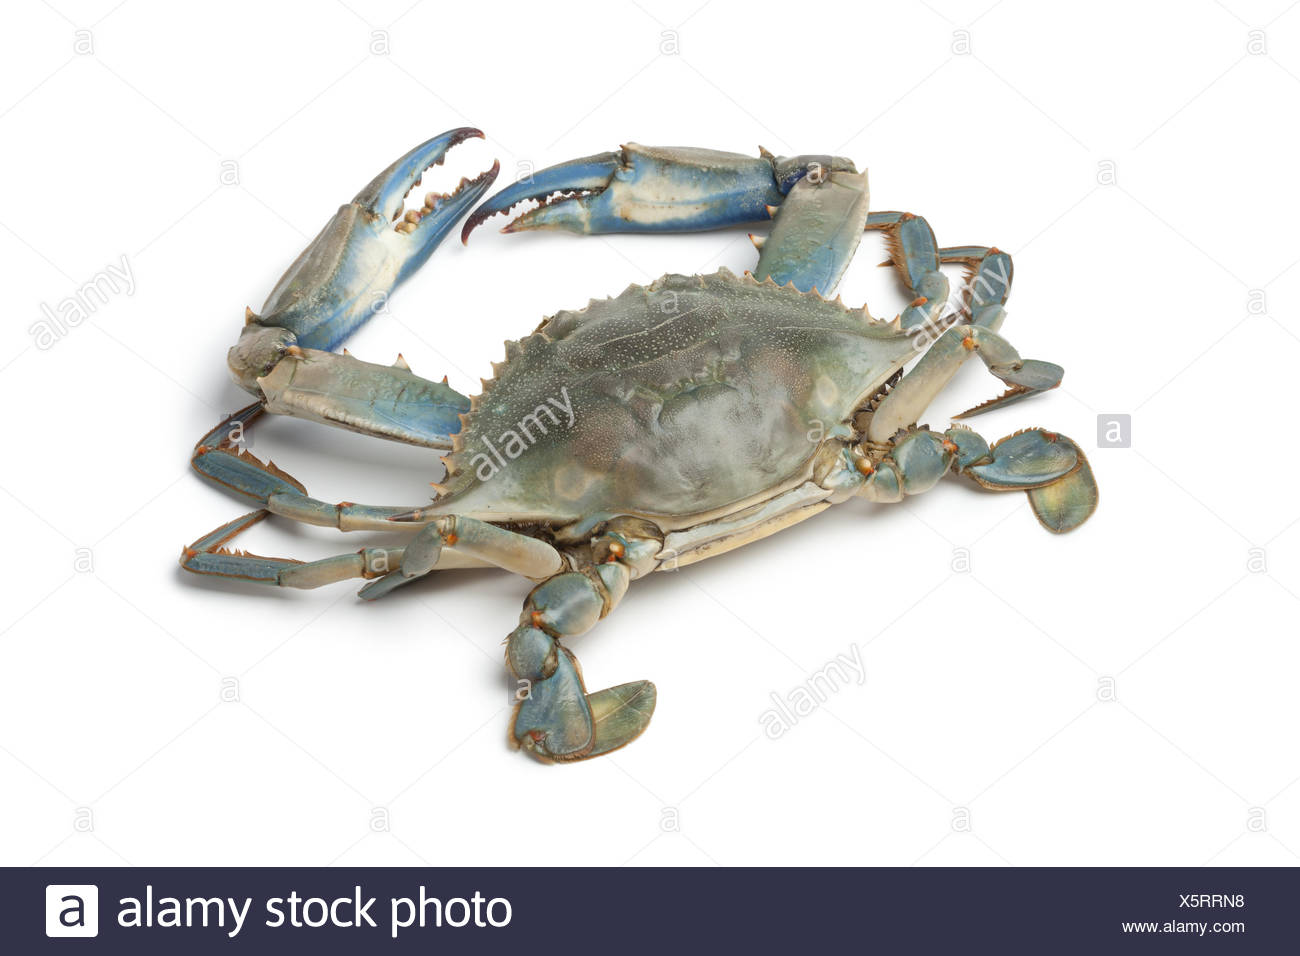 Crabs Cut Out Stock Images & Pictures - Alamy